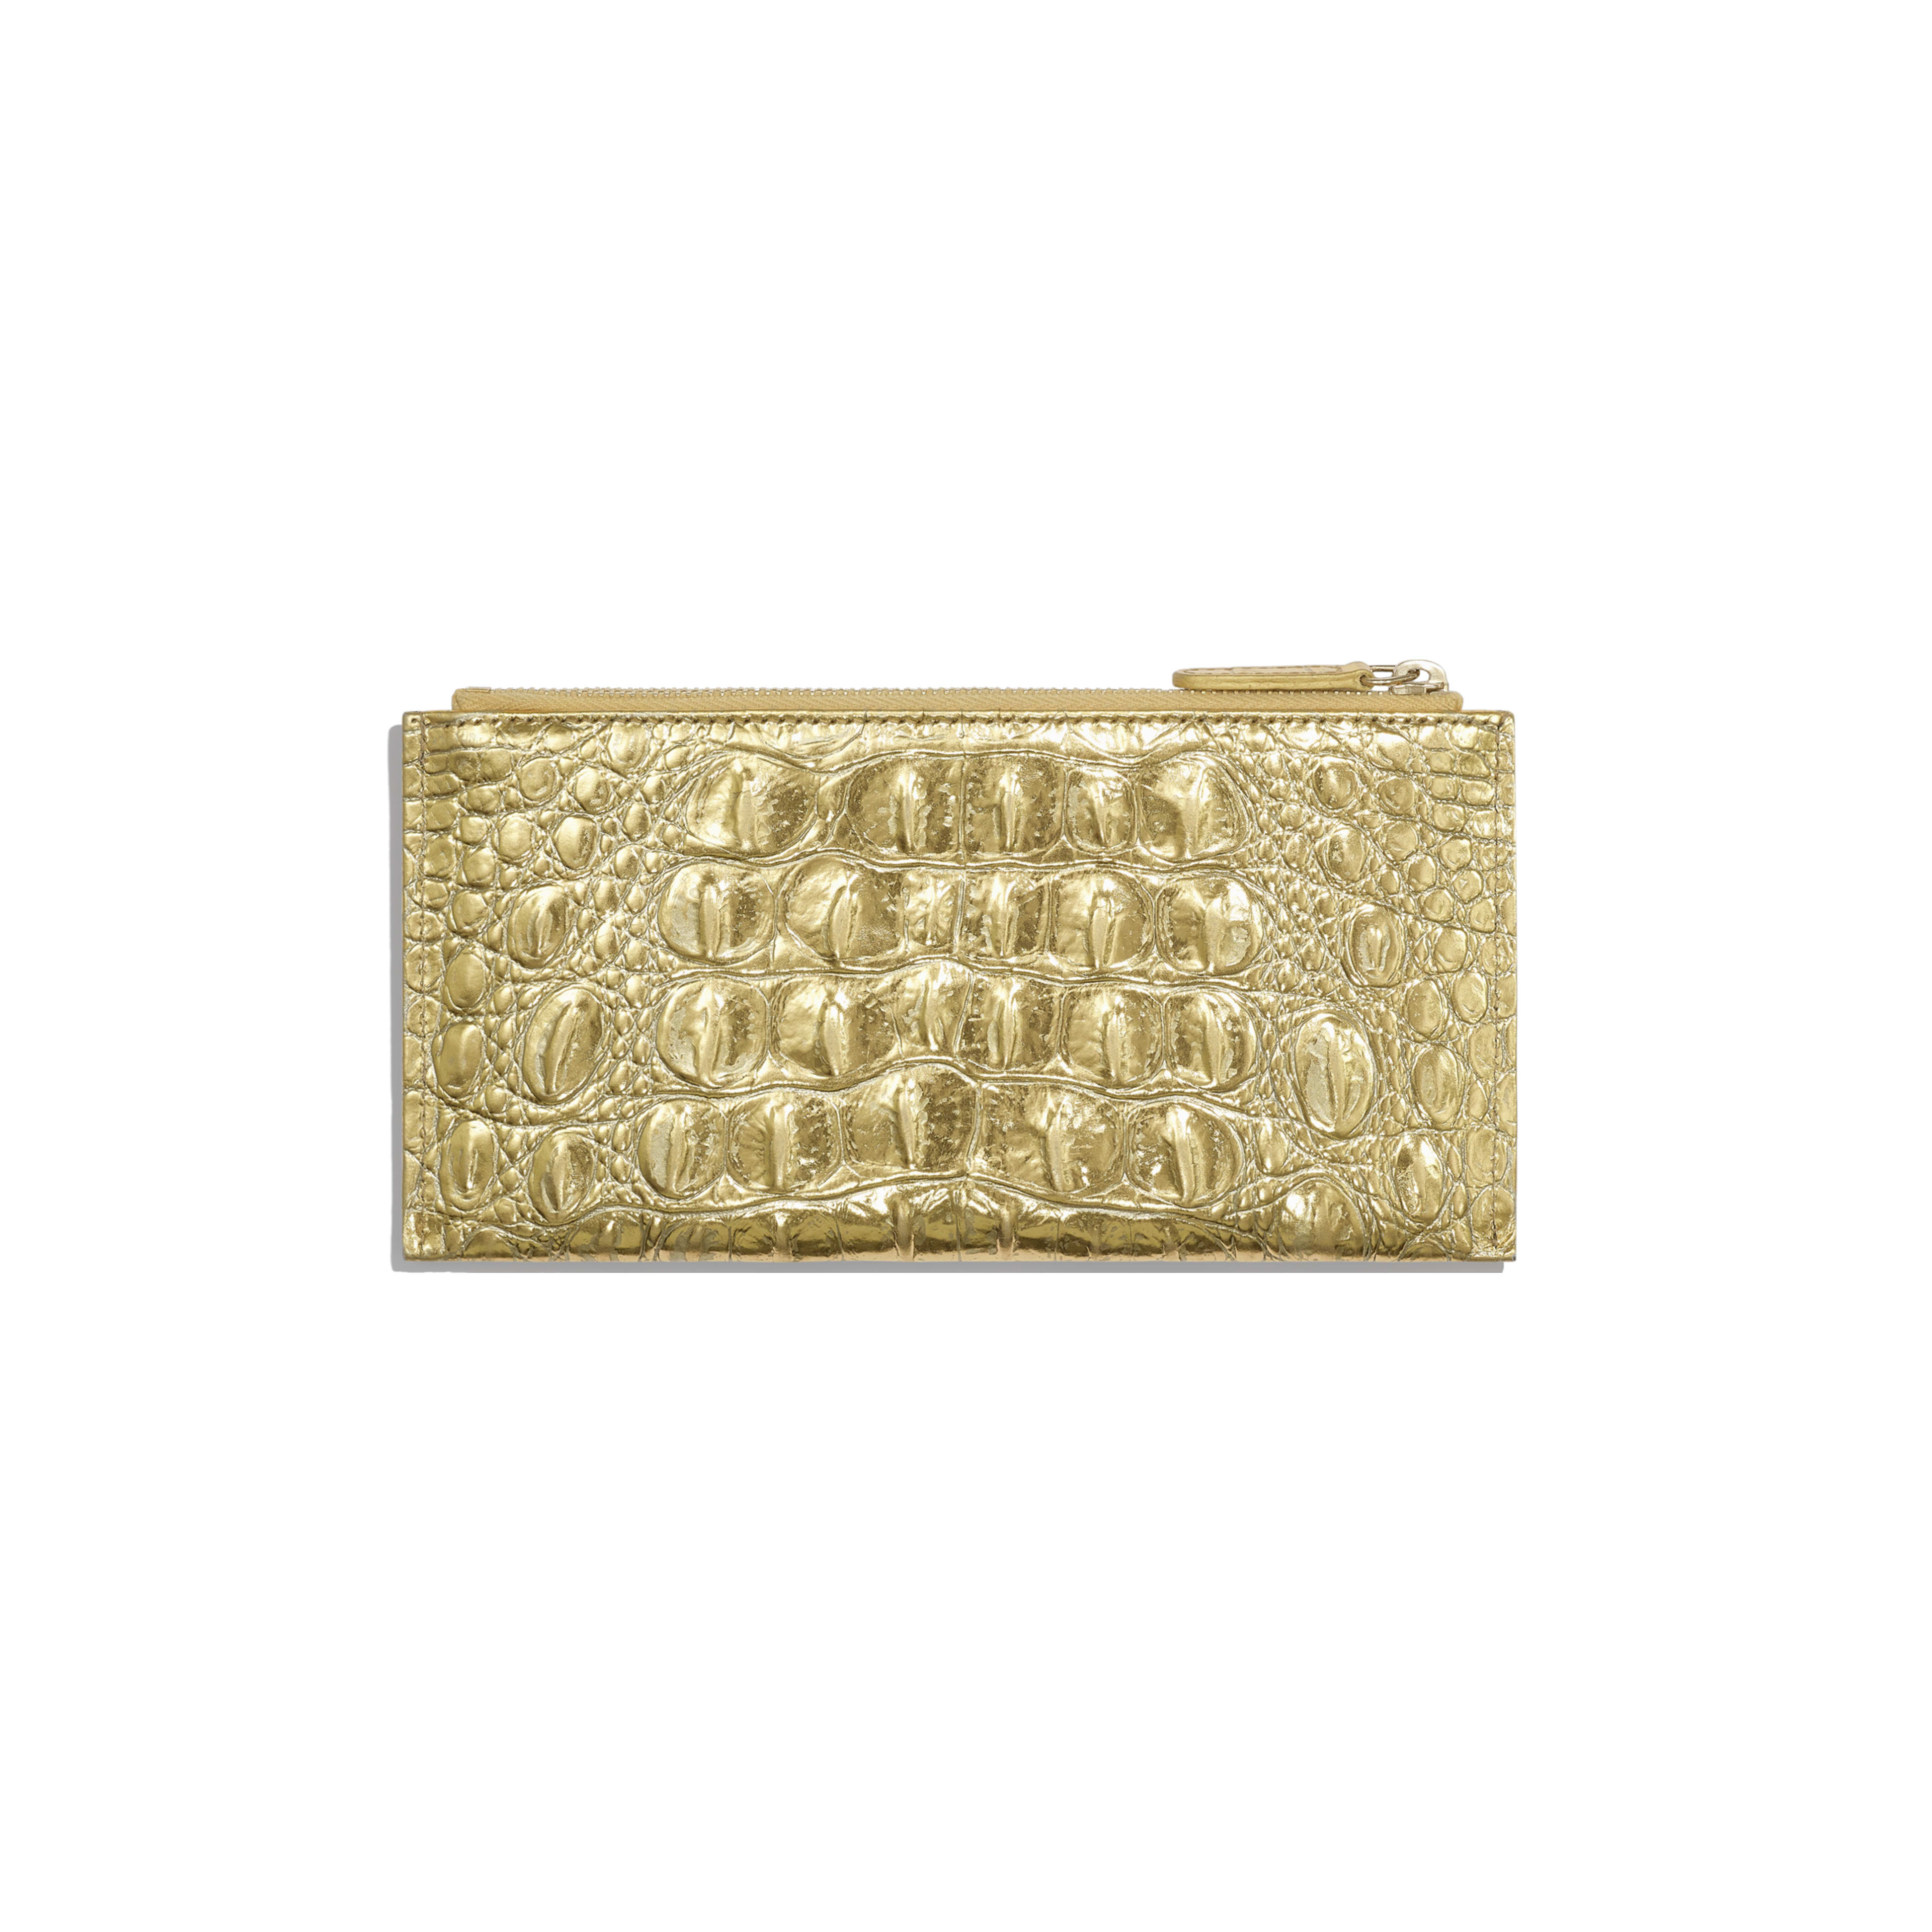 Classic Pouch - Gold - Metallic Crocodile Embossed Calfskin & Gold Metal - Alternative view - see full sized version